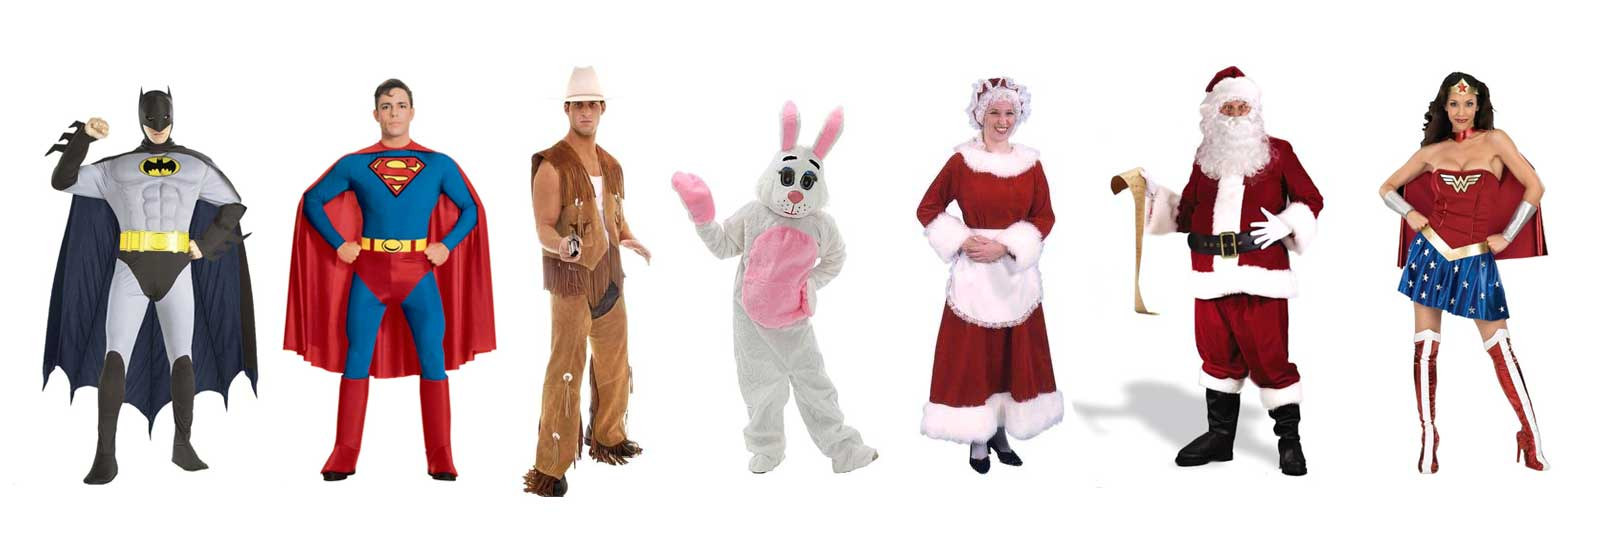 Costume Rentals in NE Tennessee, SE Kentucky and SW Virginia Tri-State Area